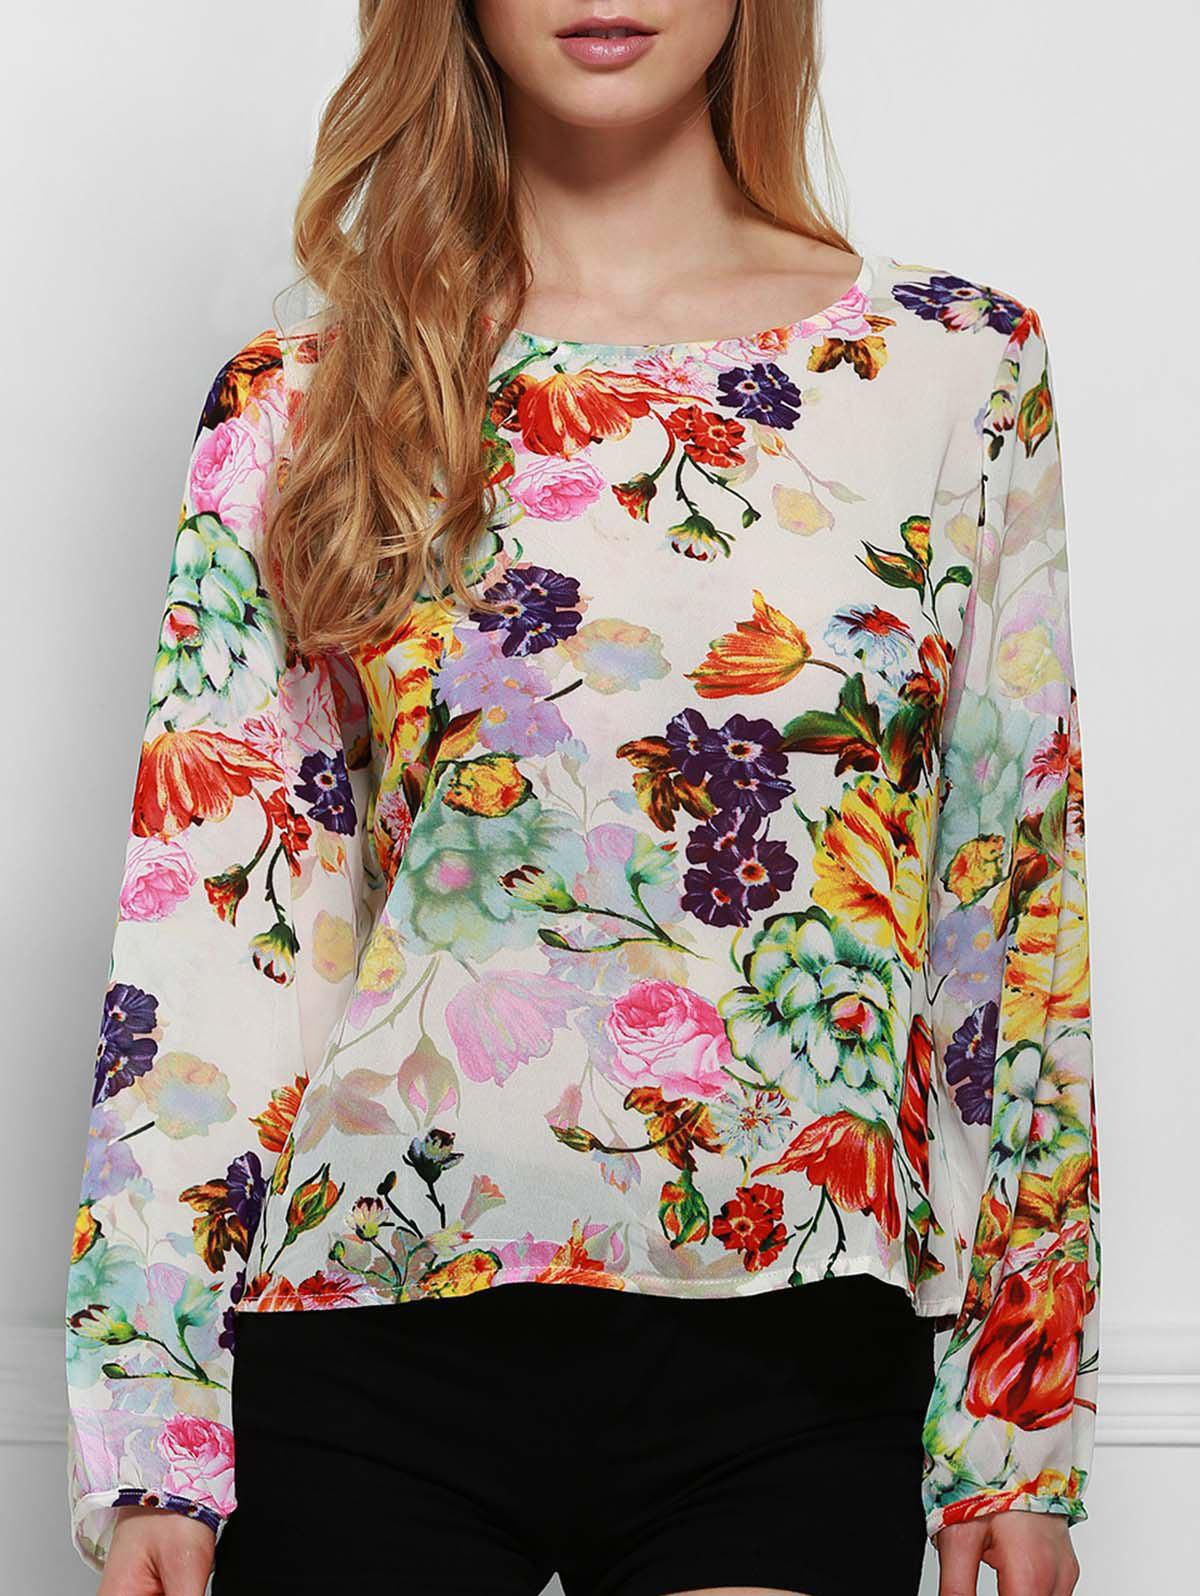 Chic Round Neck Long Sleeve Cut Out Floral Print Women's Blouse - COLORMIX M